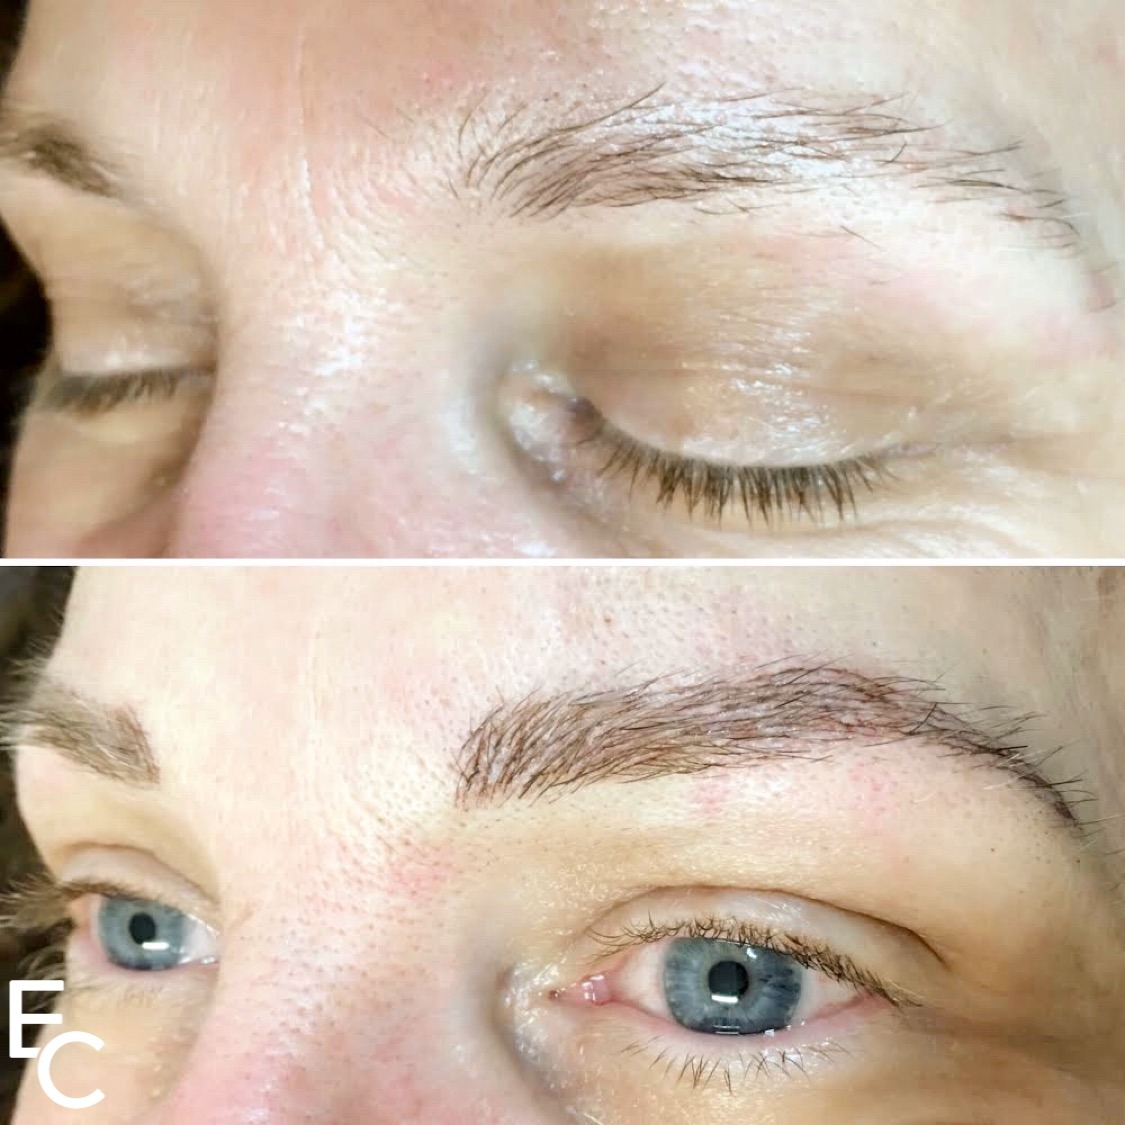 eyebrow tattoo correction work